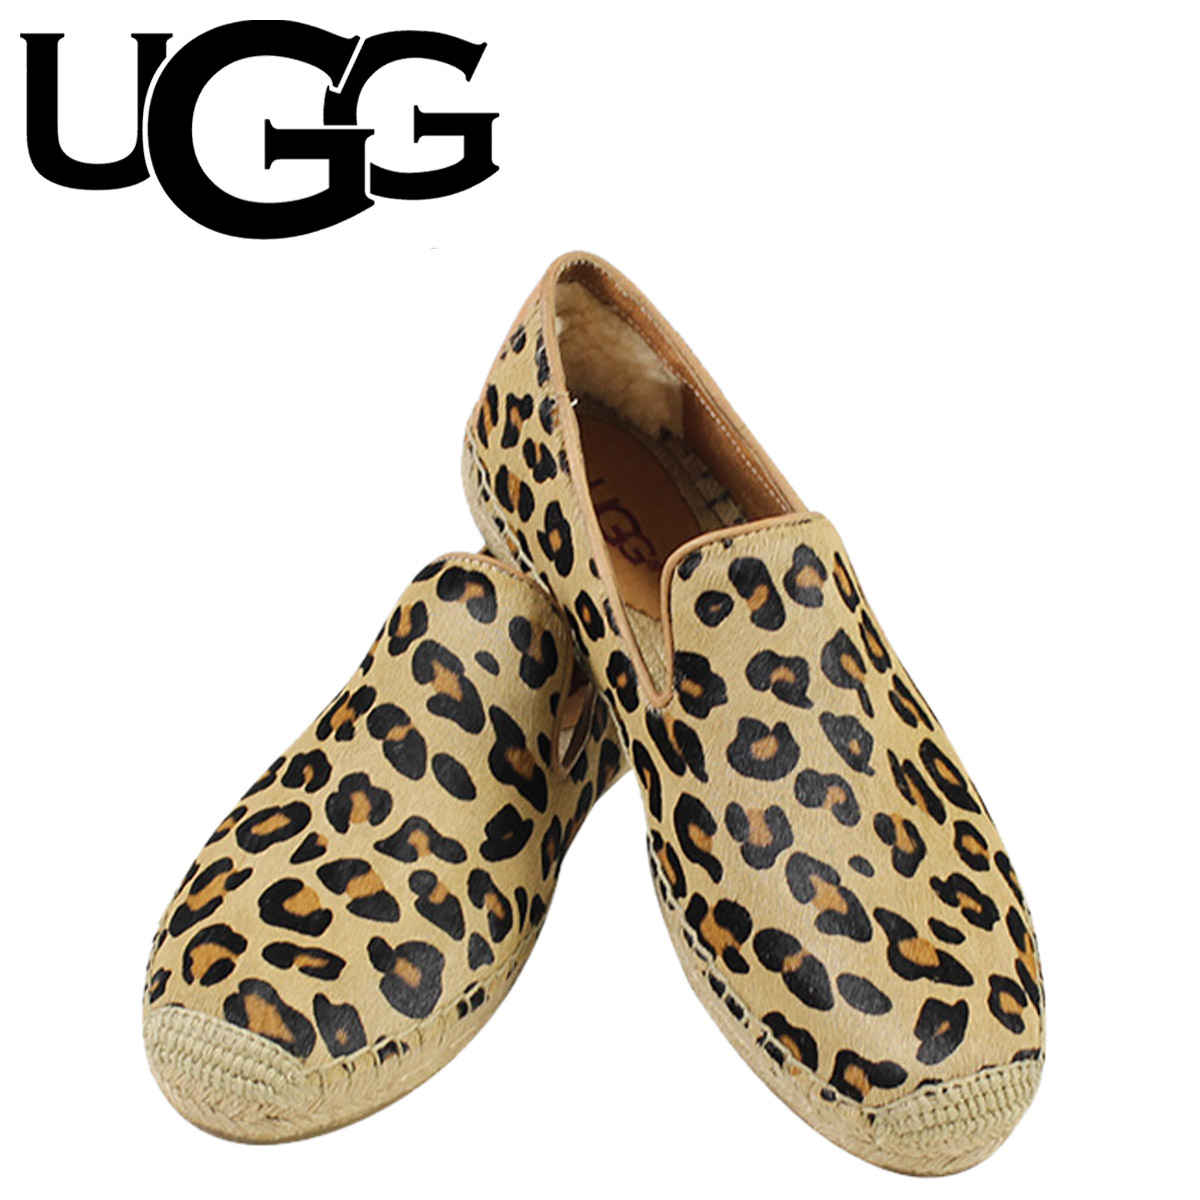 3dc57d51e381 ALLSPORTS: UGG UGG women's Sandrine calf hair Leopard slip-on shoes ...